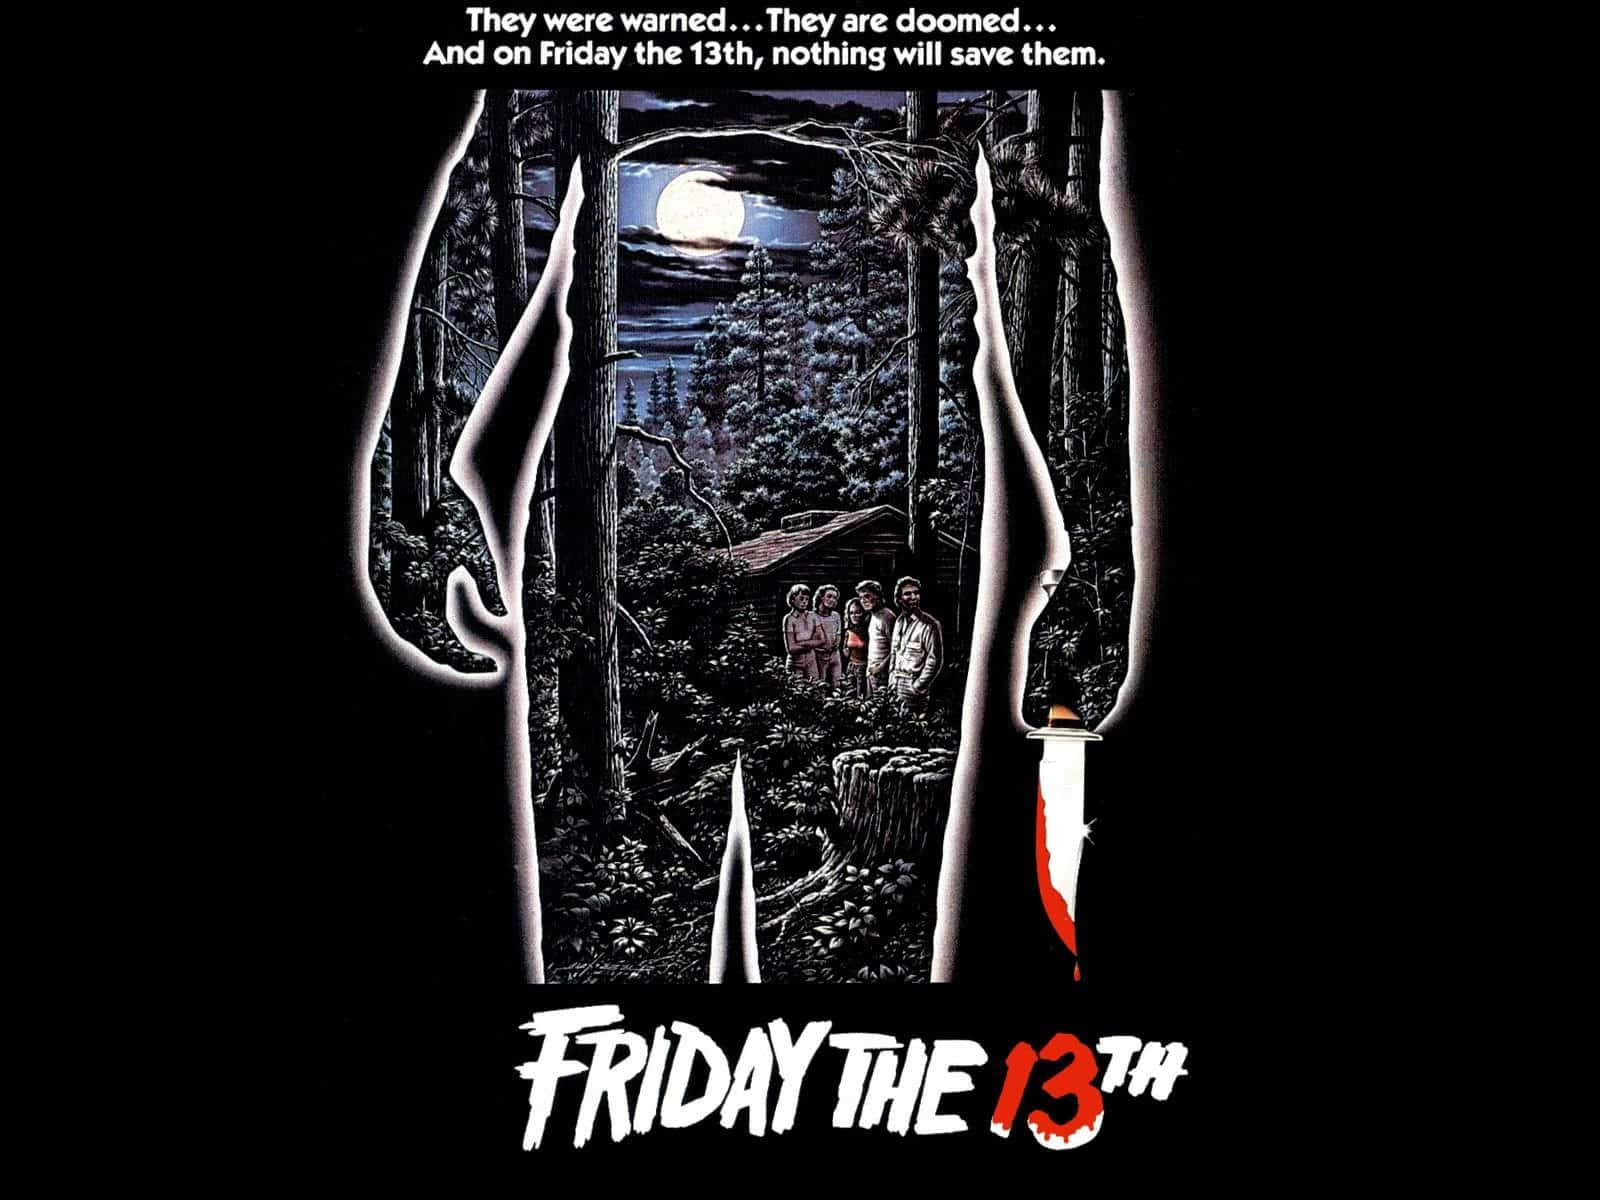 Horror Movie Review: Friday the 13th (1980)